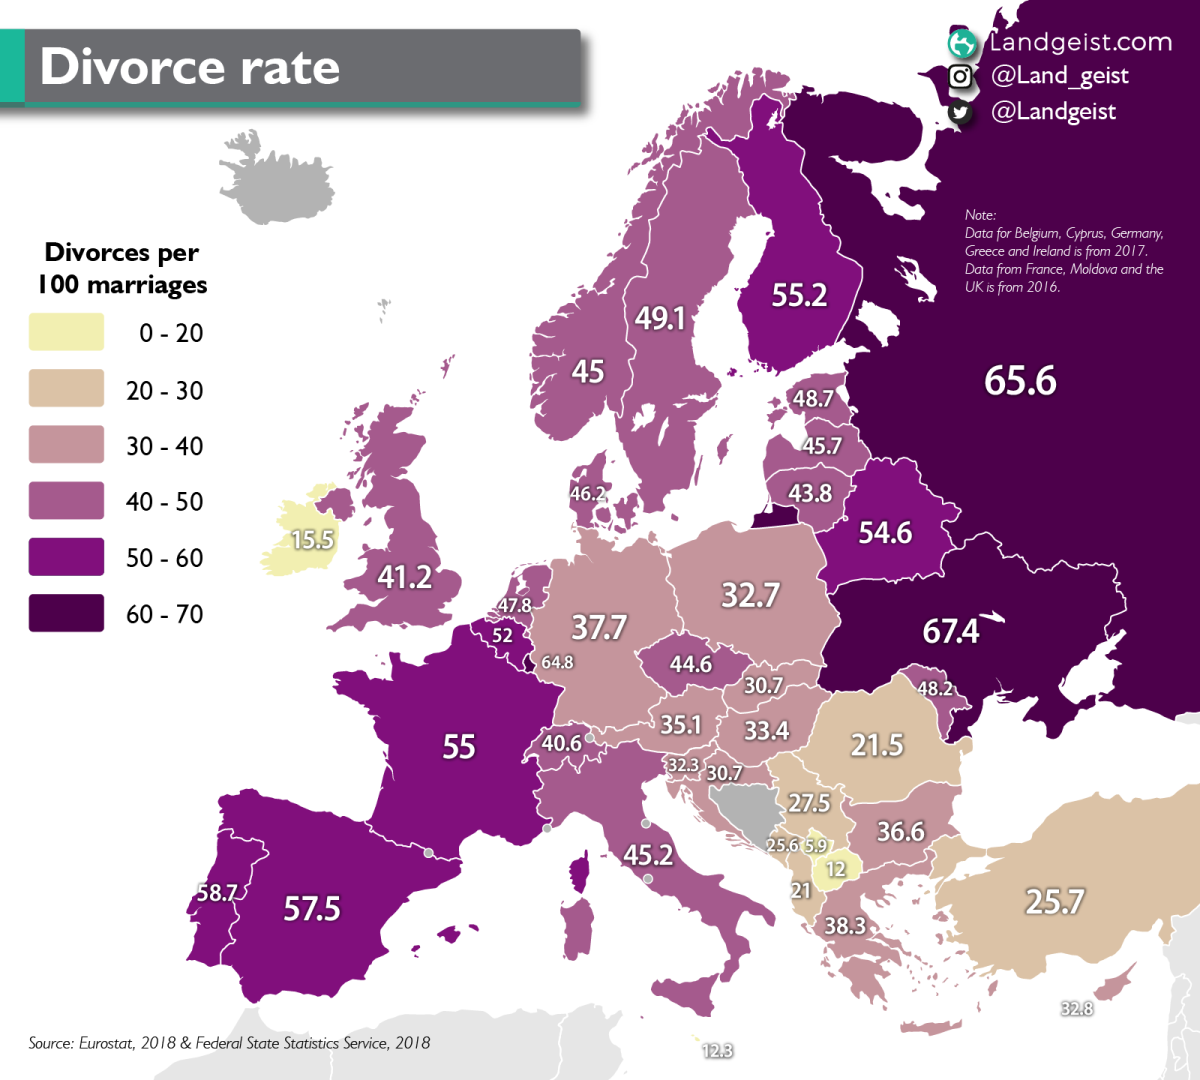 Divorce rate in Europe. Divorces per 100 marriages.